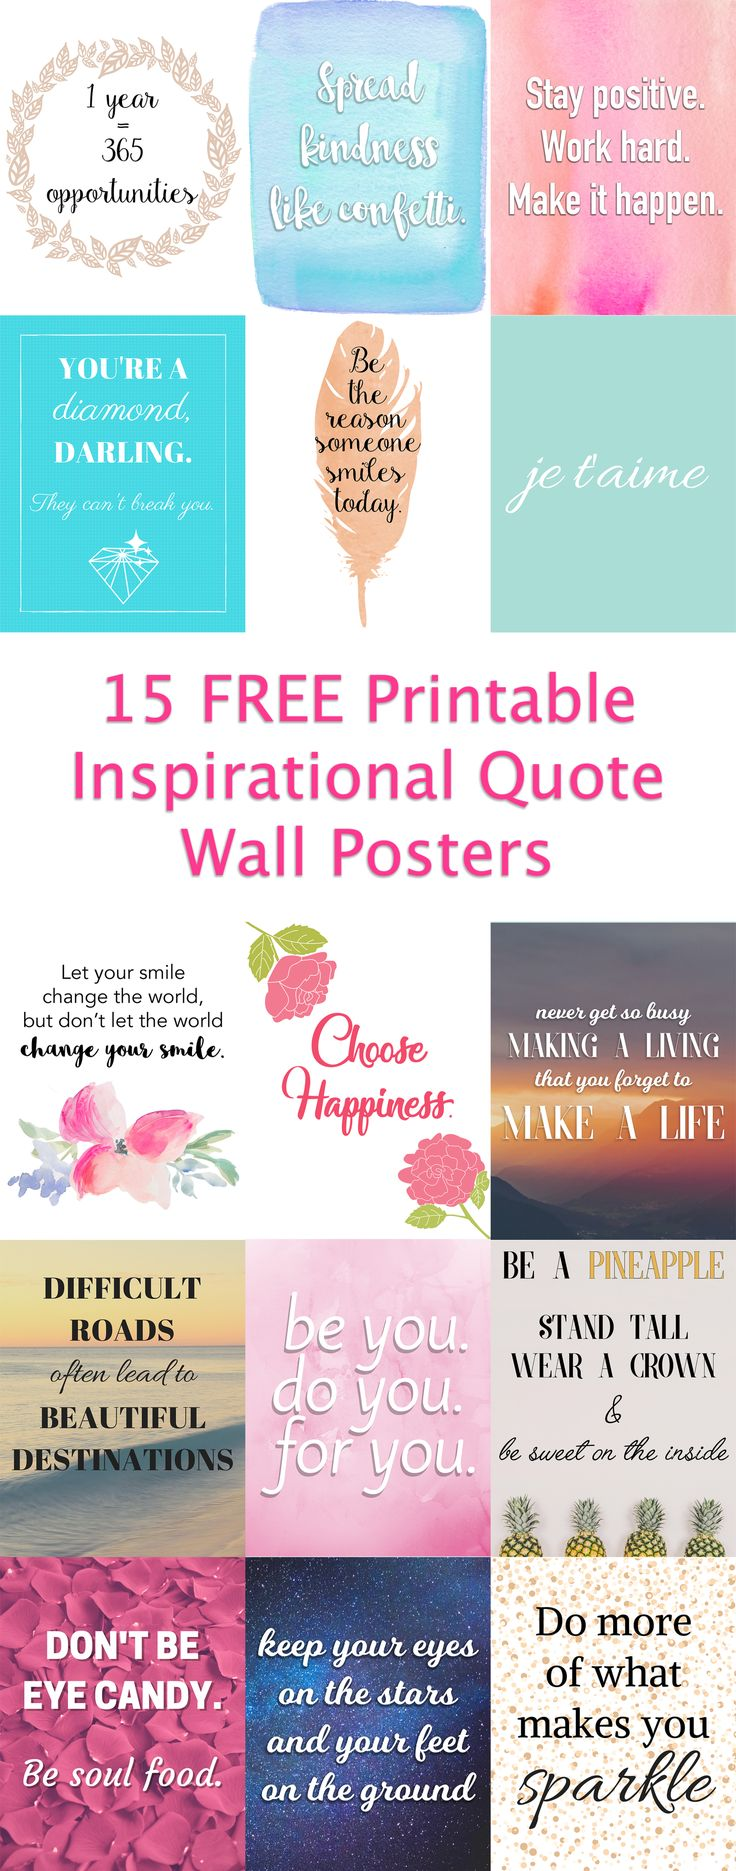 It's just an image of Terrible Free Printable Inspirational Quotes